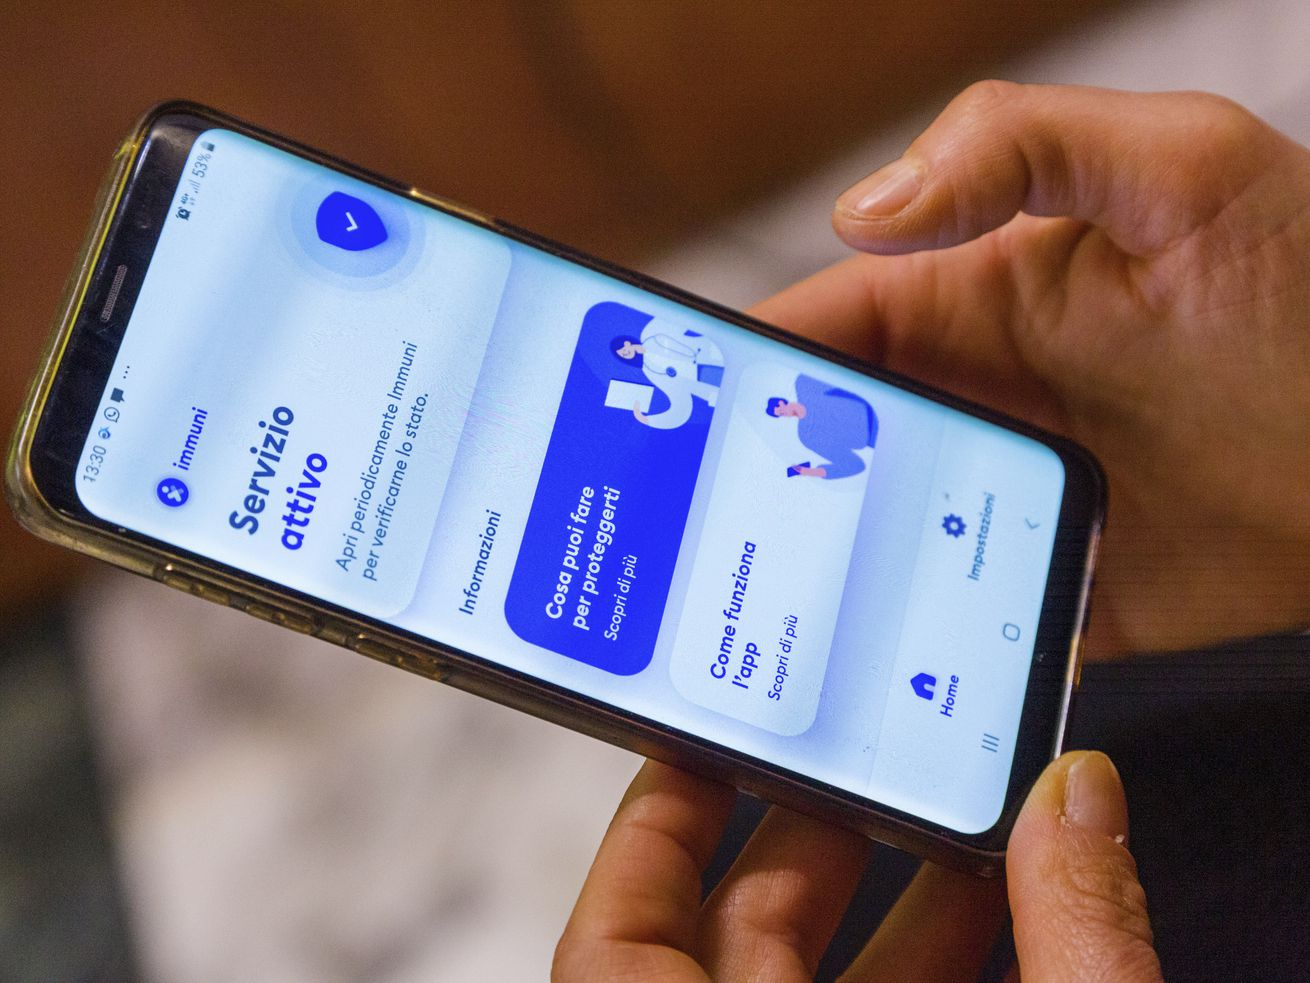 Italian Technological Innovation and Digitalization Minister, Paola Pisano shows her phone, featuring a contact tracing app that Italy launched nationwide in its efforts to contain COVID-19's spread, during an interview with The Associated Press in Rome, Thursday, June 11, 2020.